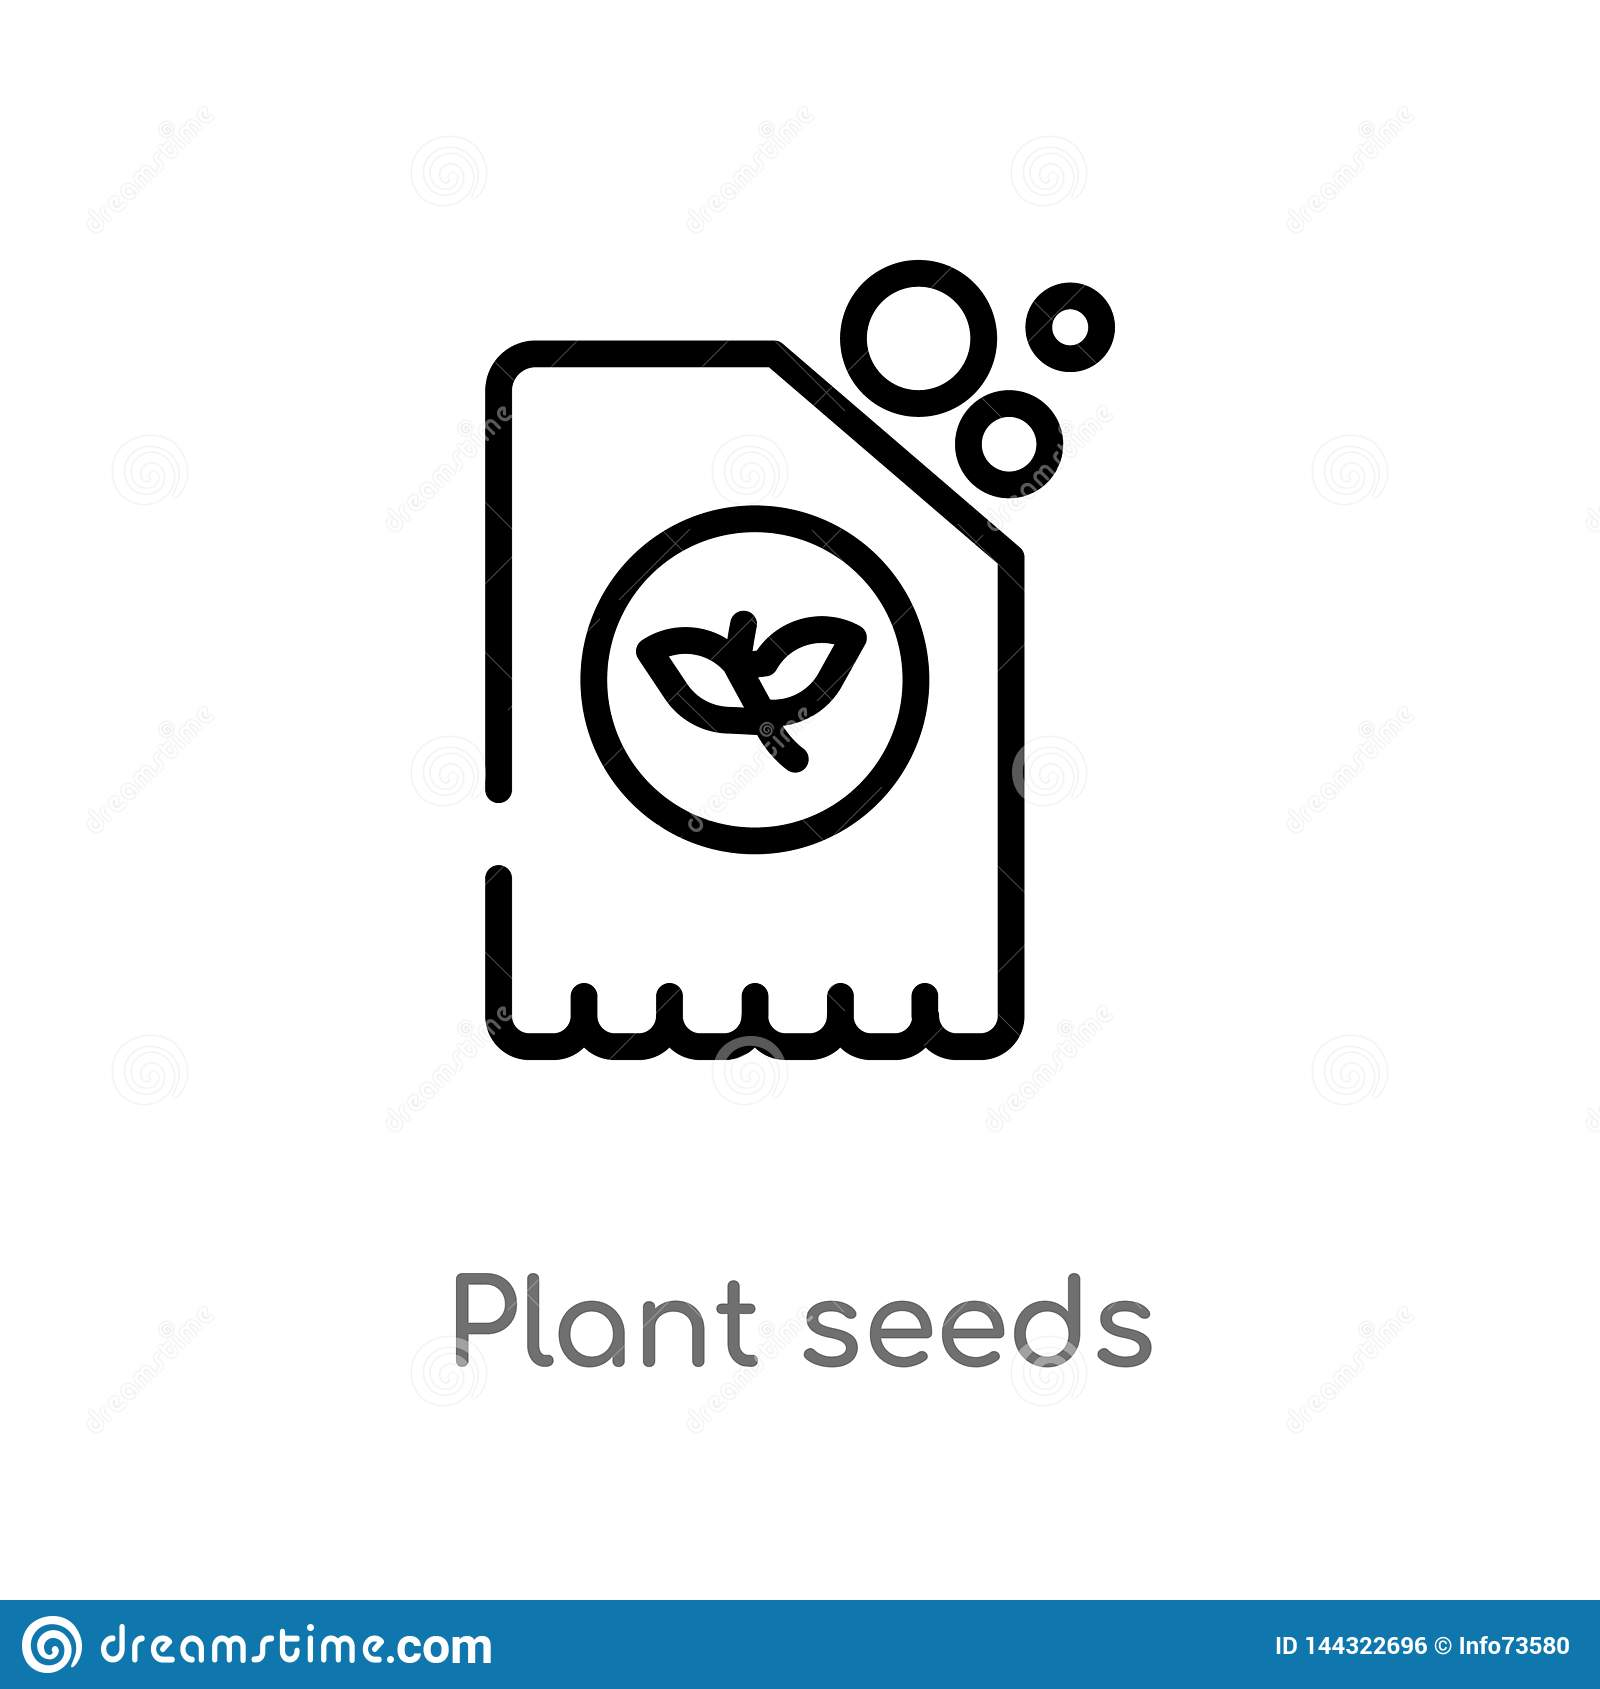 outline plant seeds vector icon. isolated black simple line element illustration from agriculture farming concept. editable vector